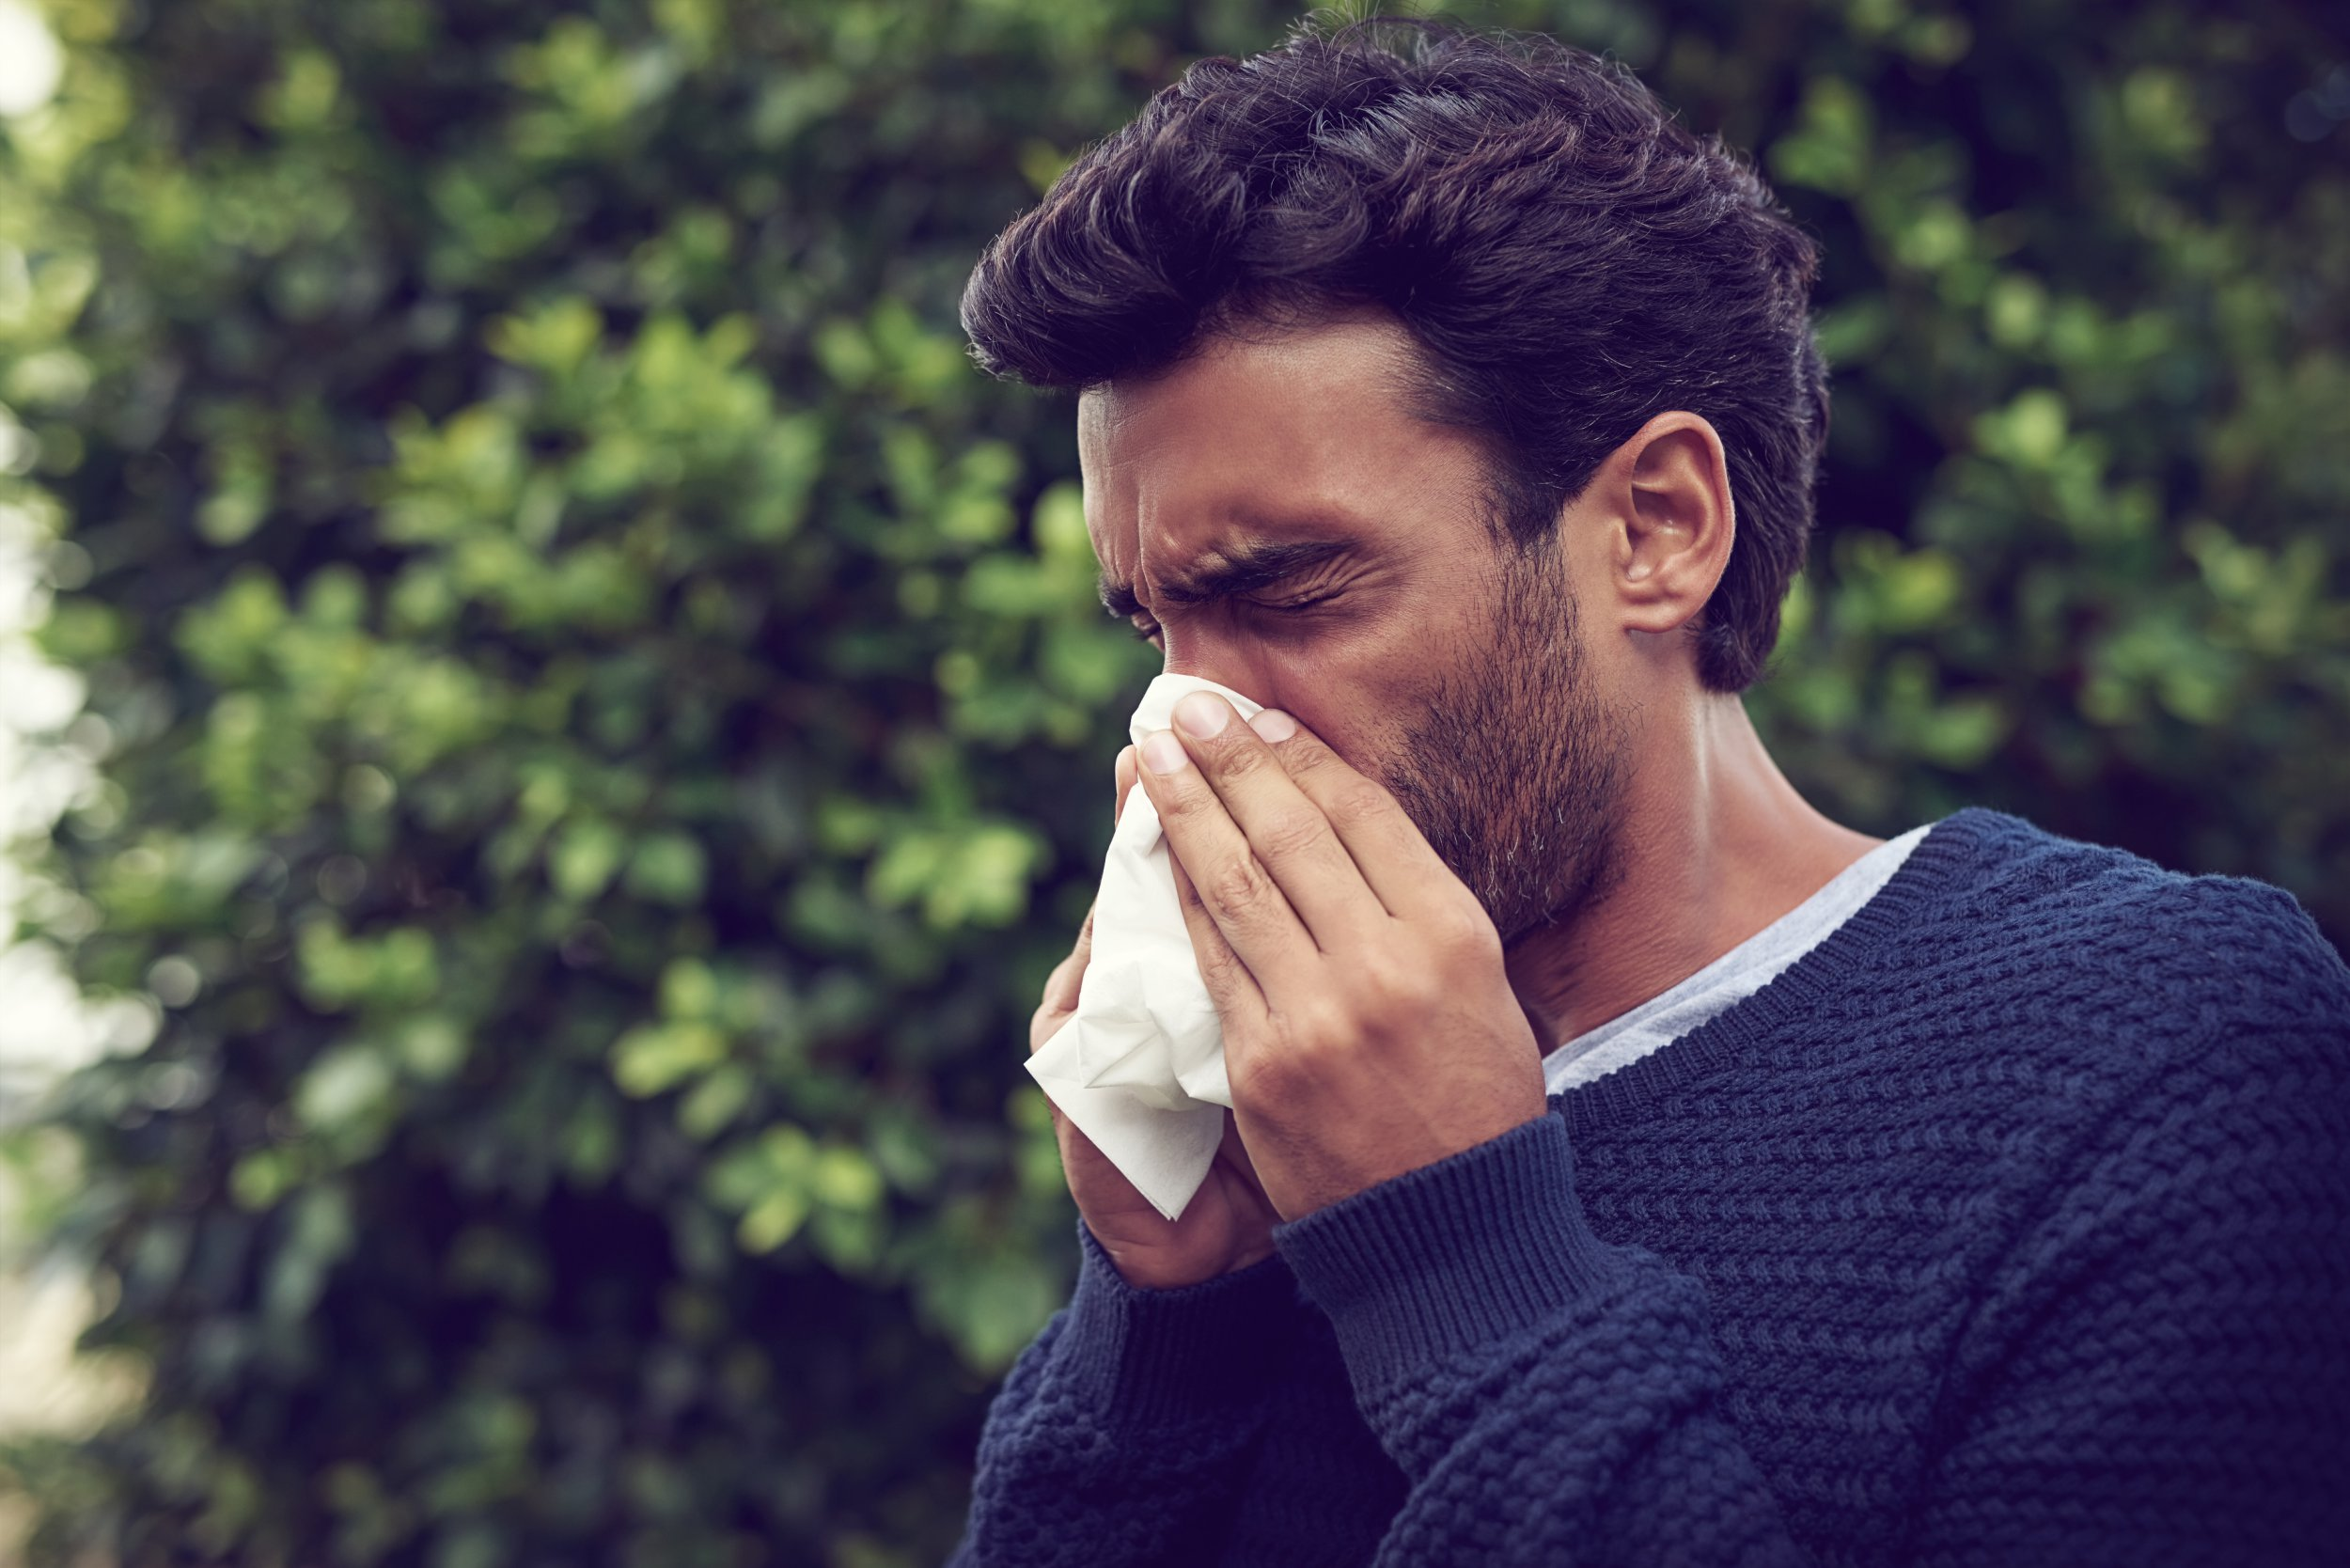 Cropped shot of a young man suffering with allergies